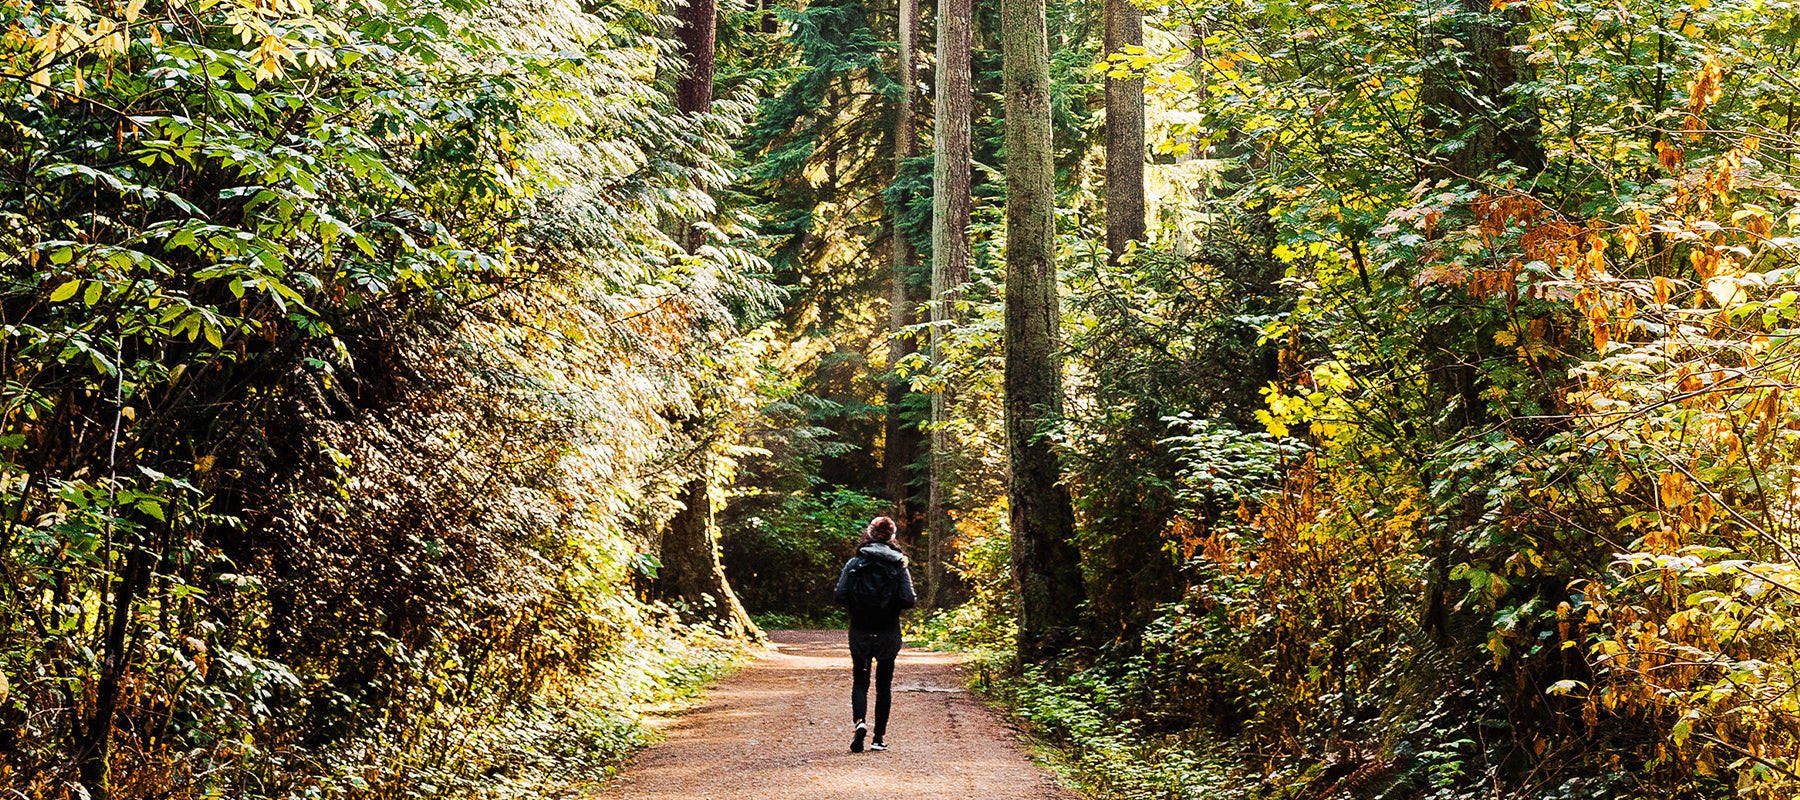 Image of person walking through the woods.